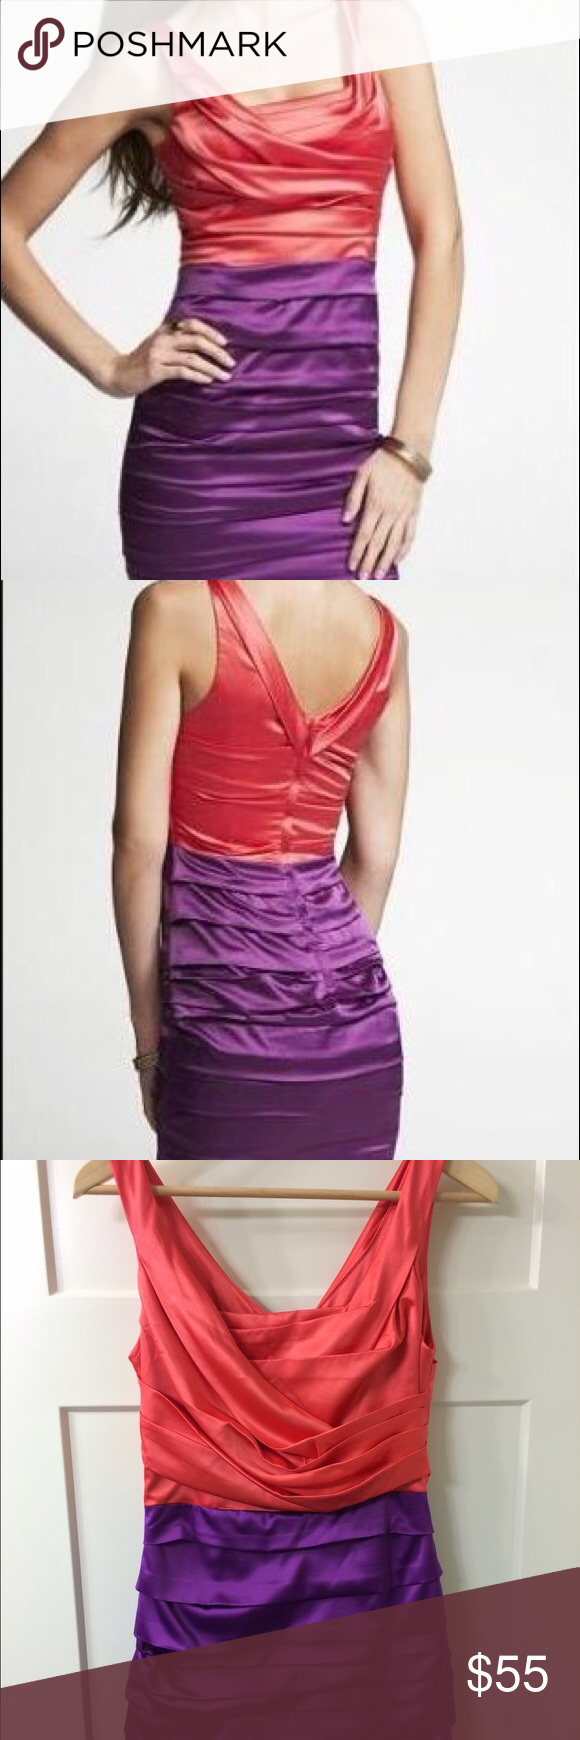 ✨ Express Ruched Purple/Coral Satin Cocktail Dress NWT   Satin ...